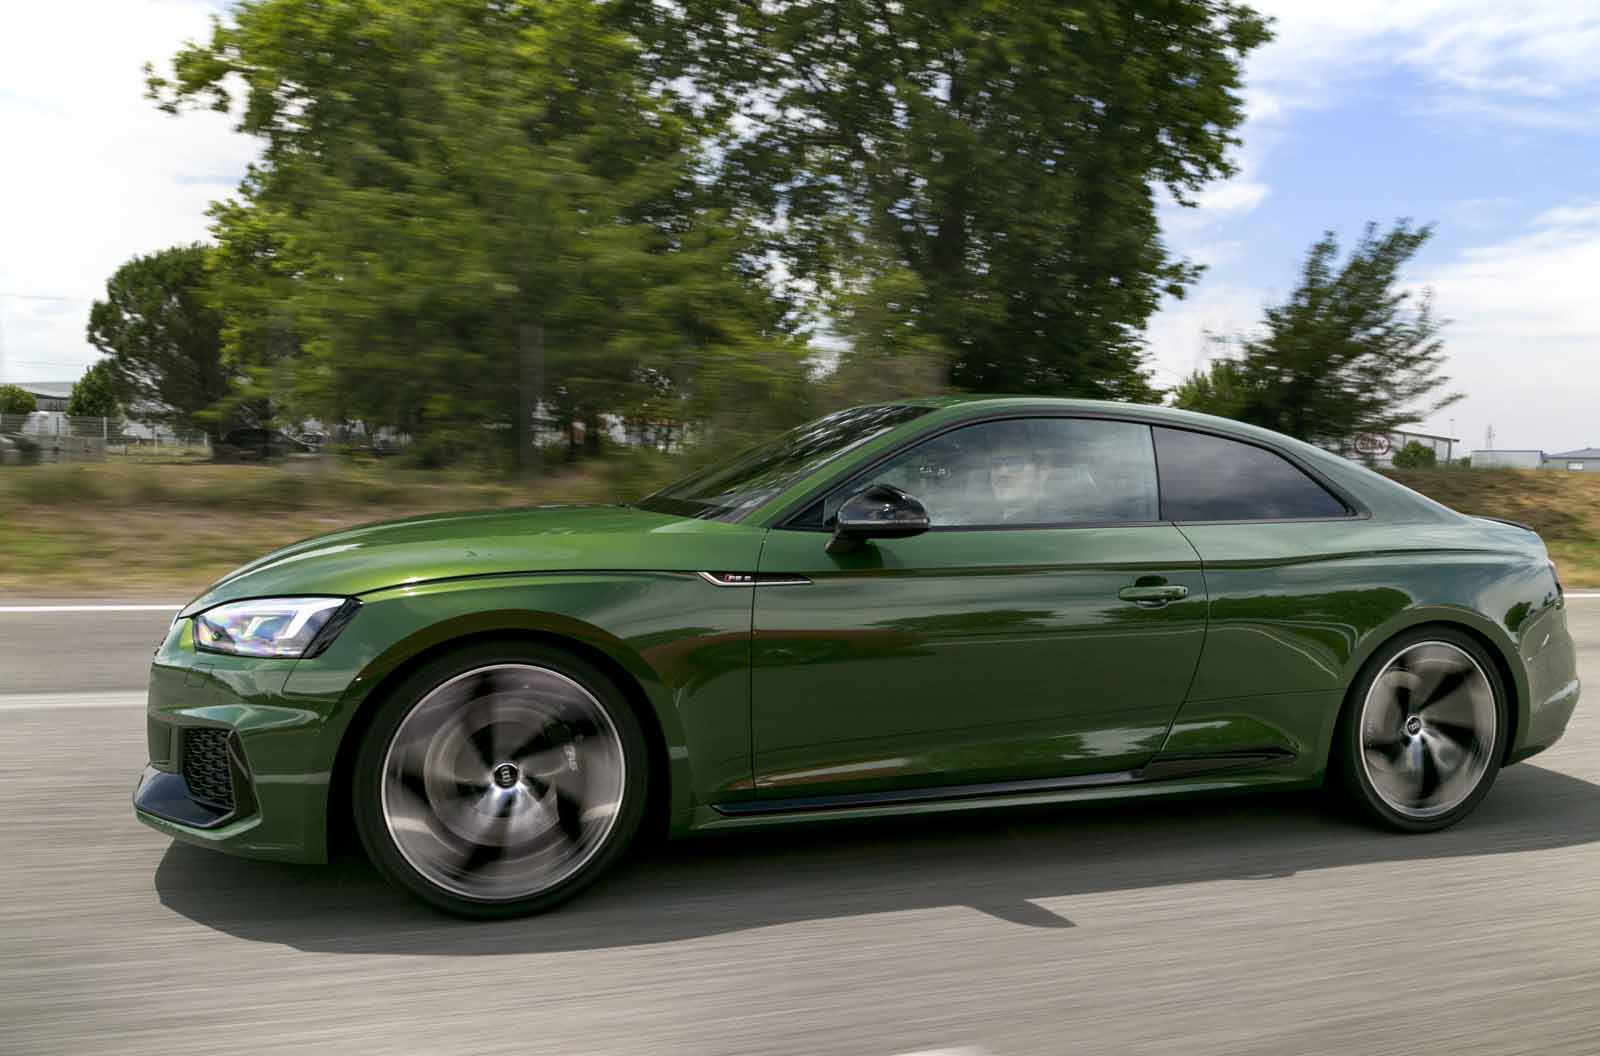 2018 audi rs5 coupe. interesting audi 2018 audi rs 5 reviewwilson001 in audi rs5 coupe 0